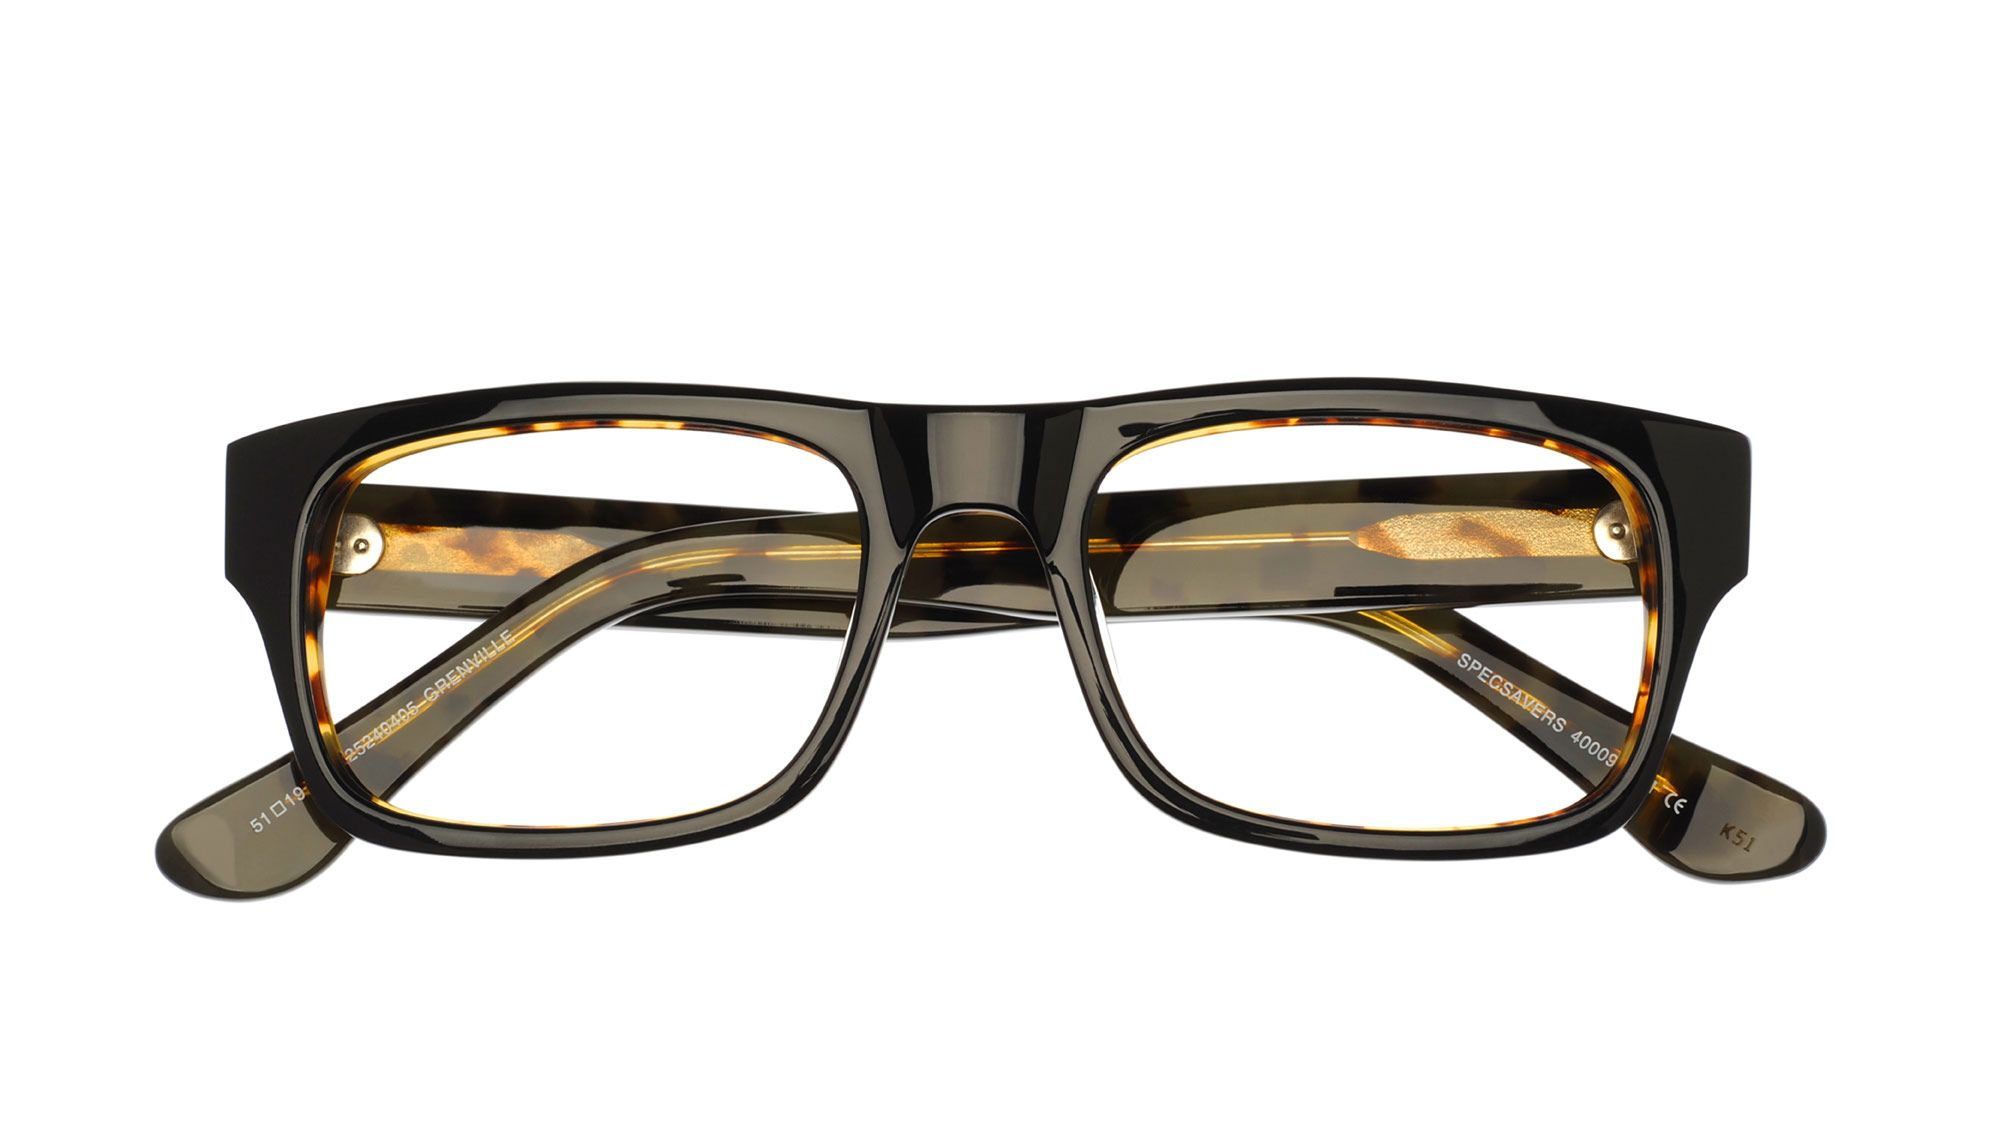 GRENVILLE Glasses by Specsavers Specsavers UK Glasses